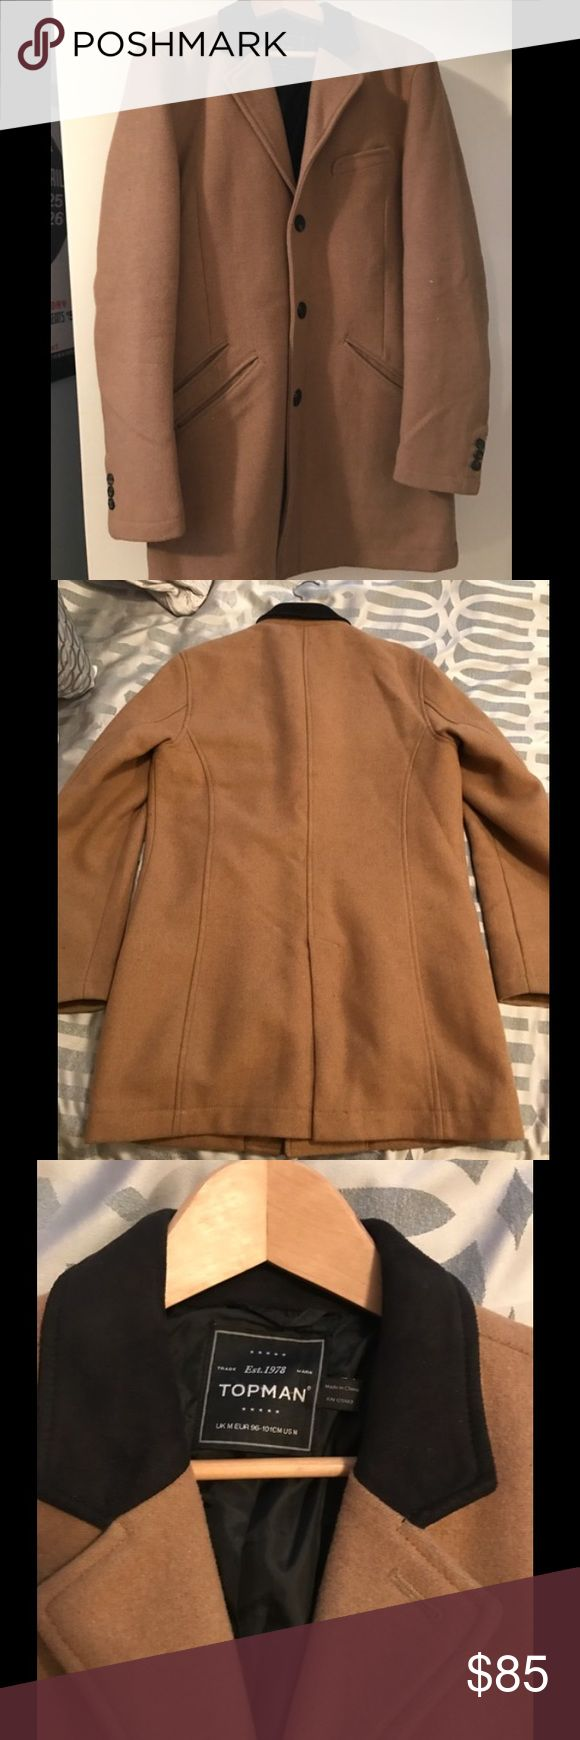 Topman tan pea coat size Medium Very good condition men's Topman coat in size Medium. Features: three-button cuffs, chest pocket; slit pockets, center vent. This coat is fully lined. 51% wool, 40% polyester, 4% viscose rayon, 3% nylon; 2% acrylic. Dry clean only. Topman Jackets & Coats Pea Coats